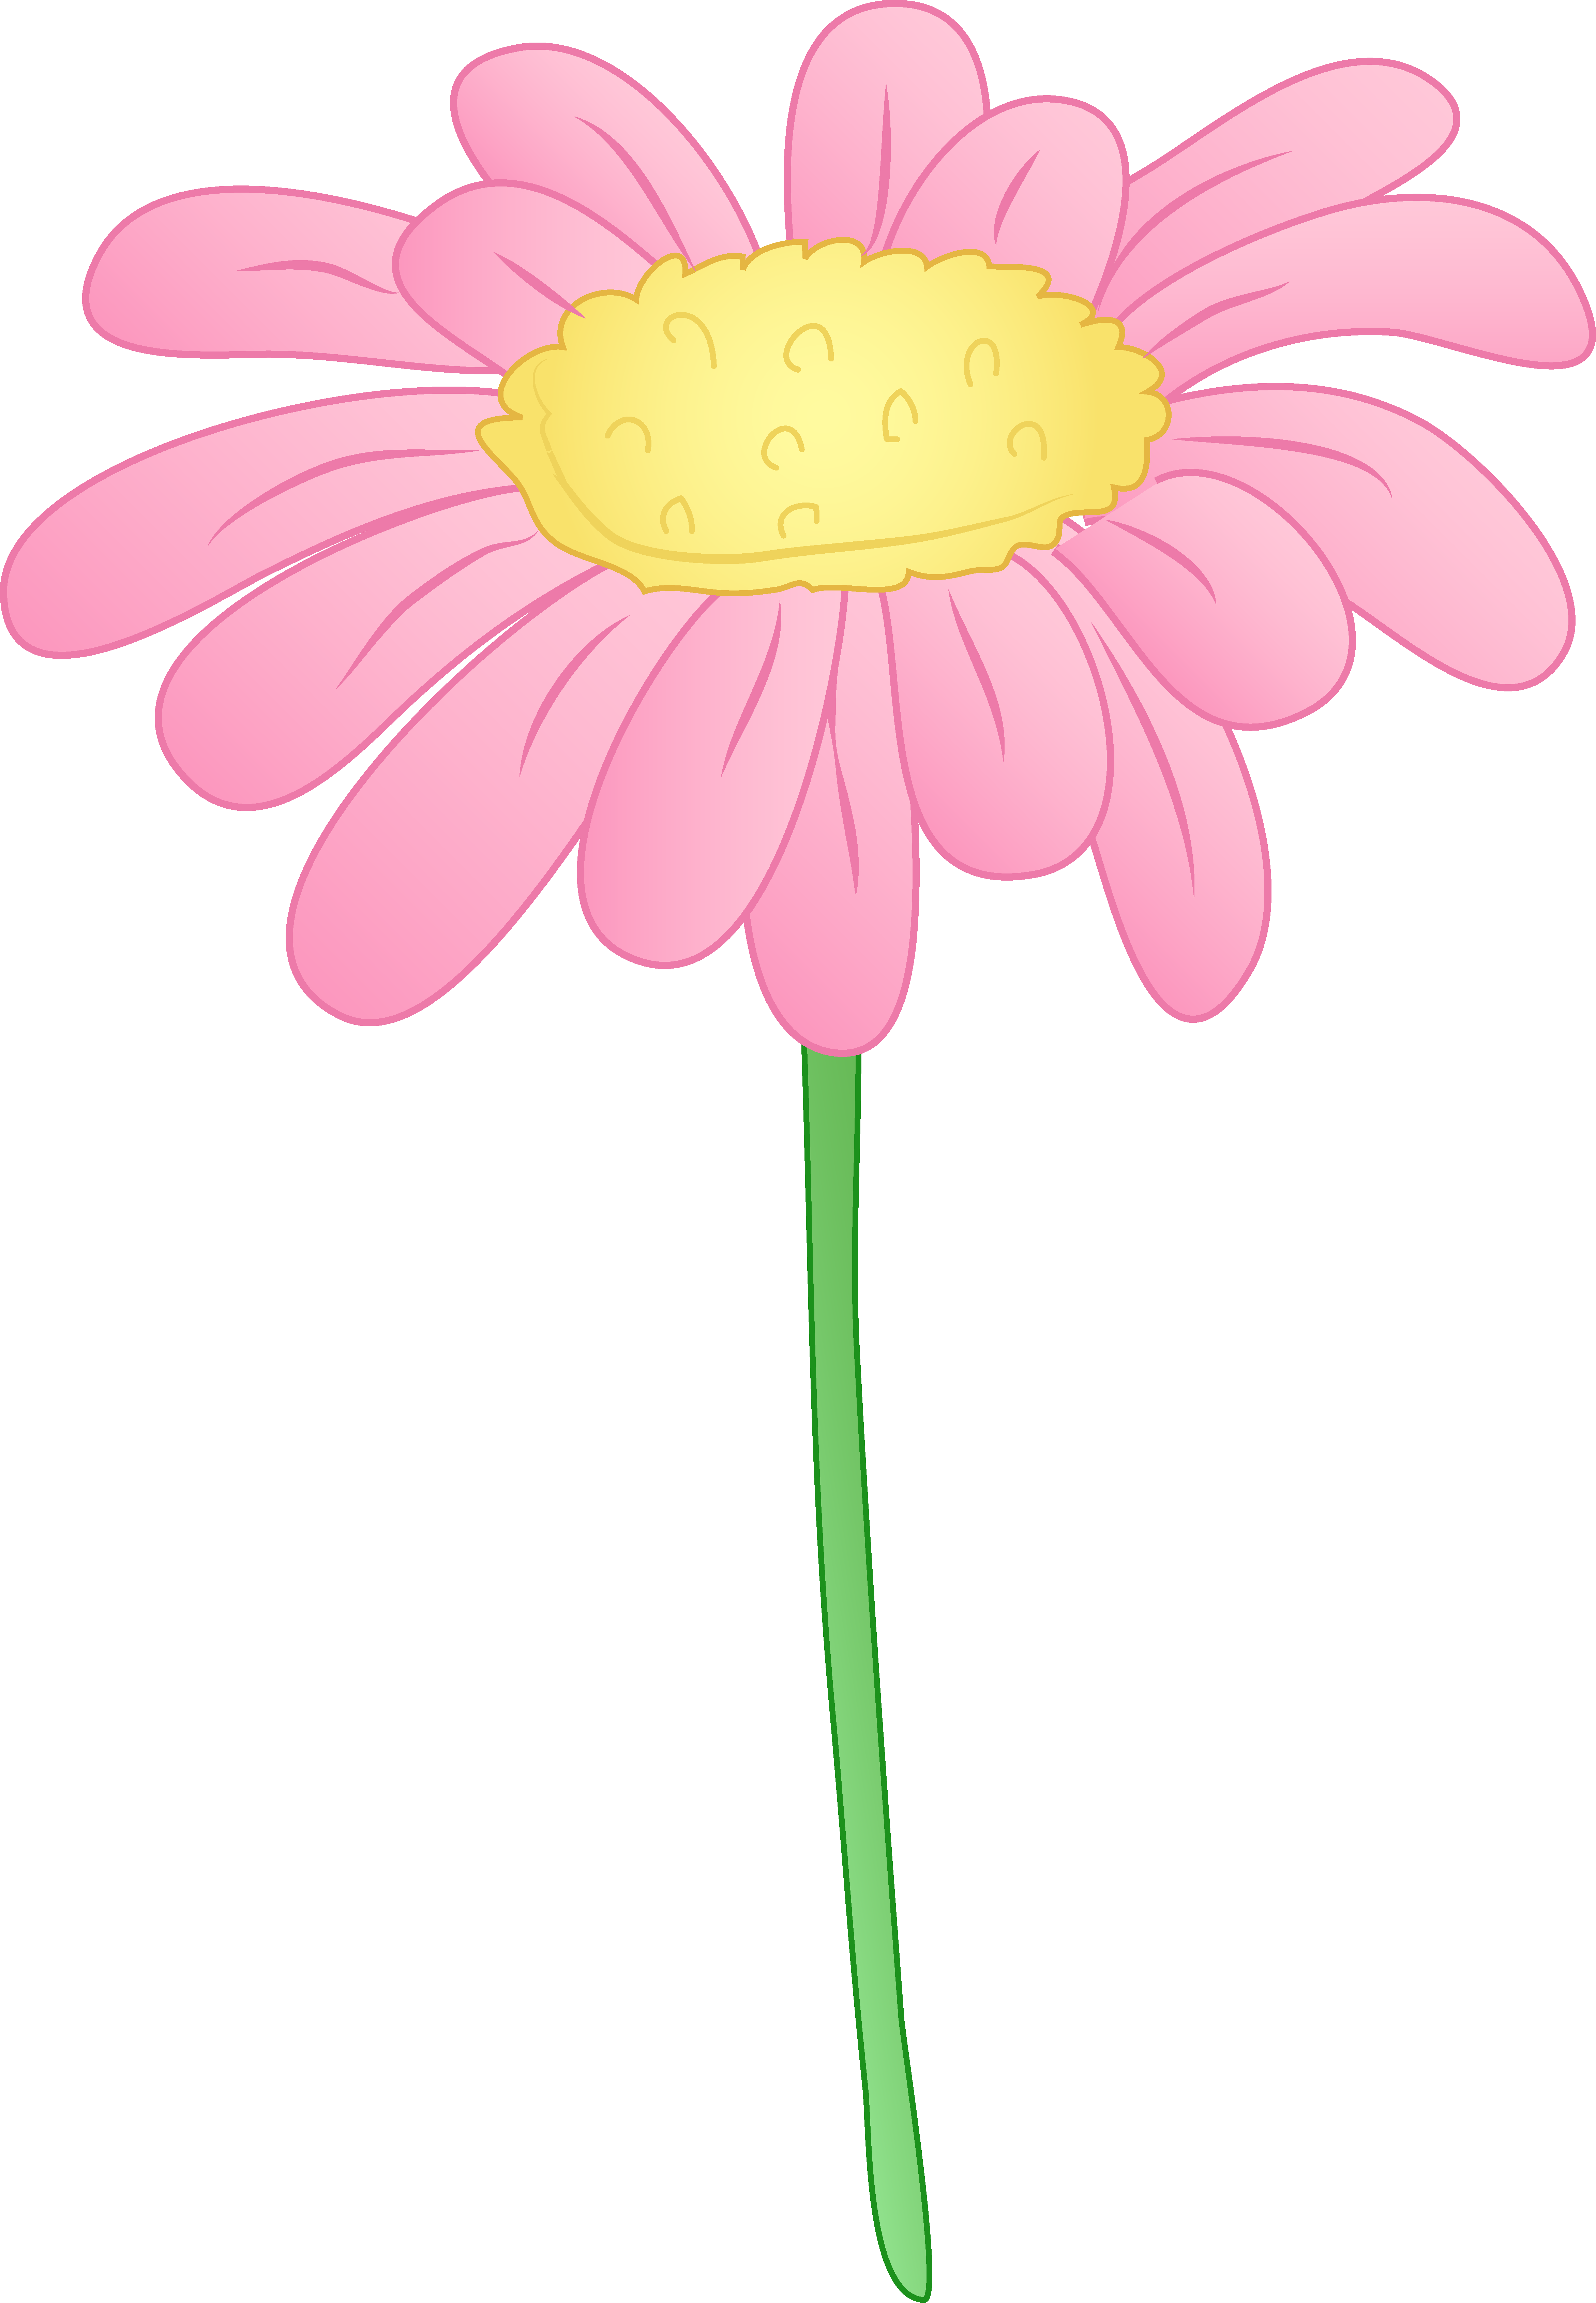 Elower clipart pink flower Clip Border Free Images Clip